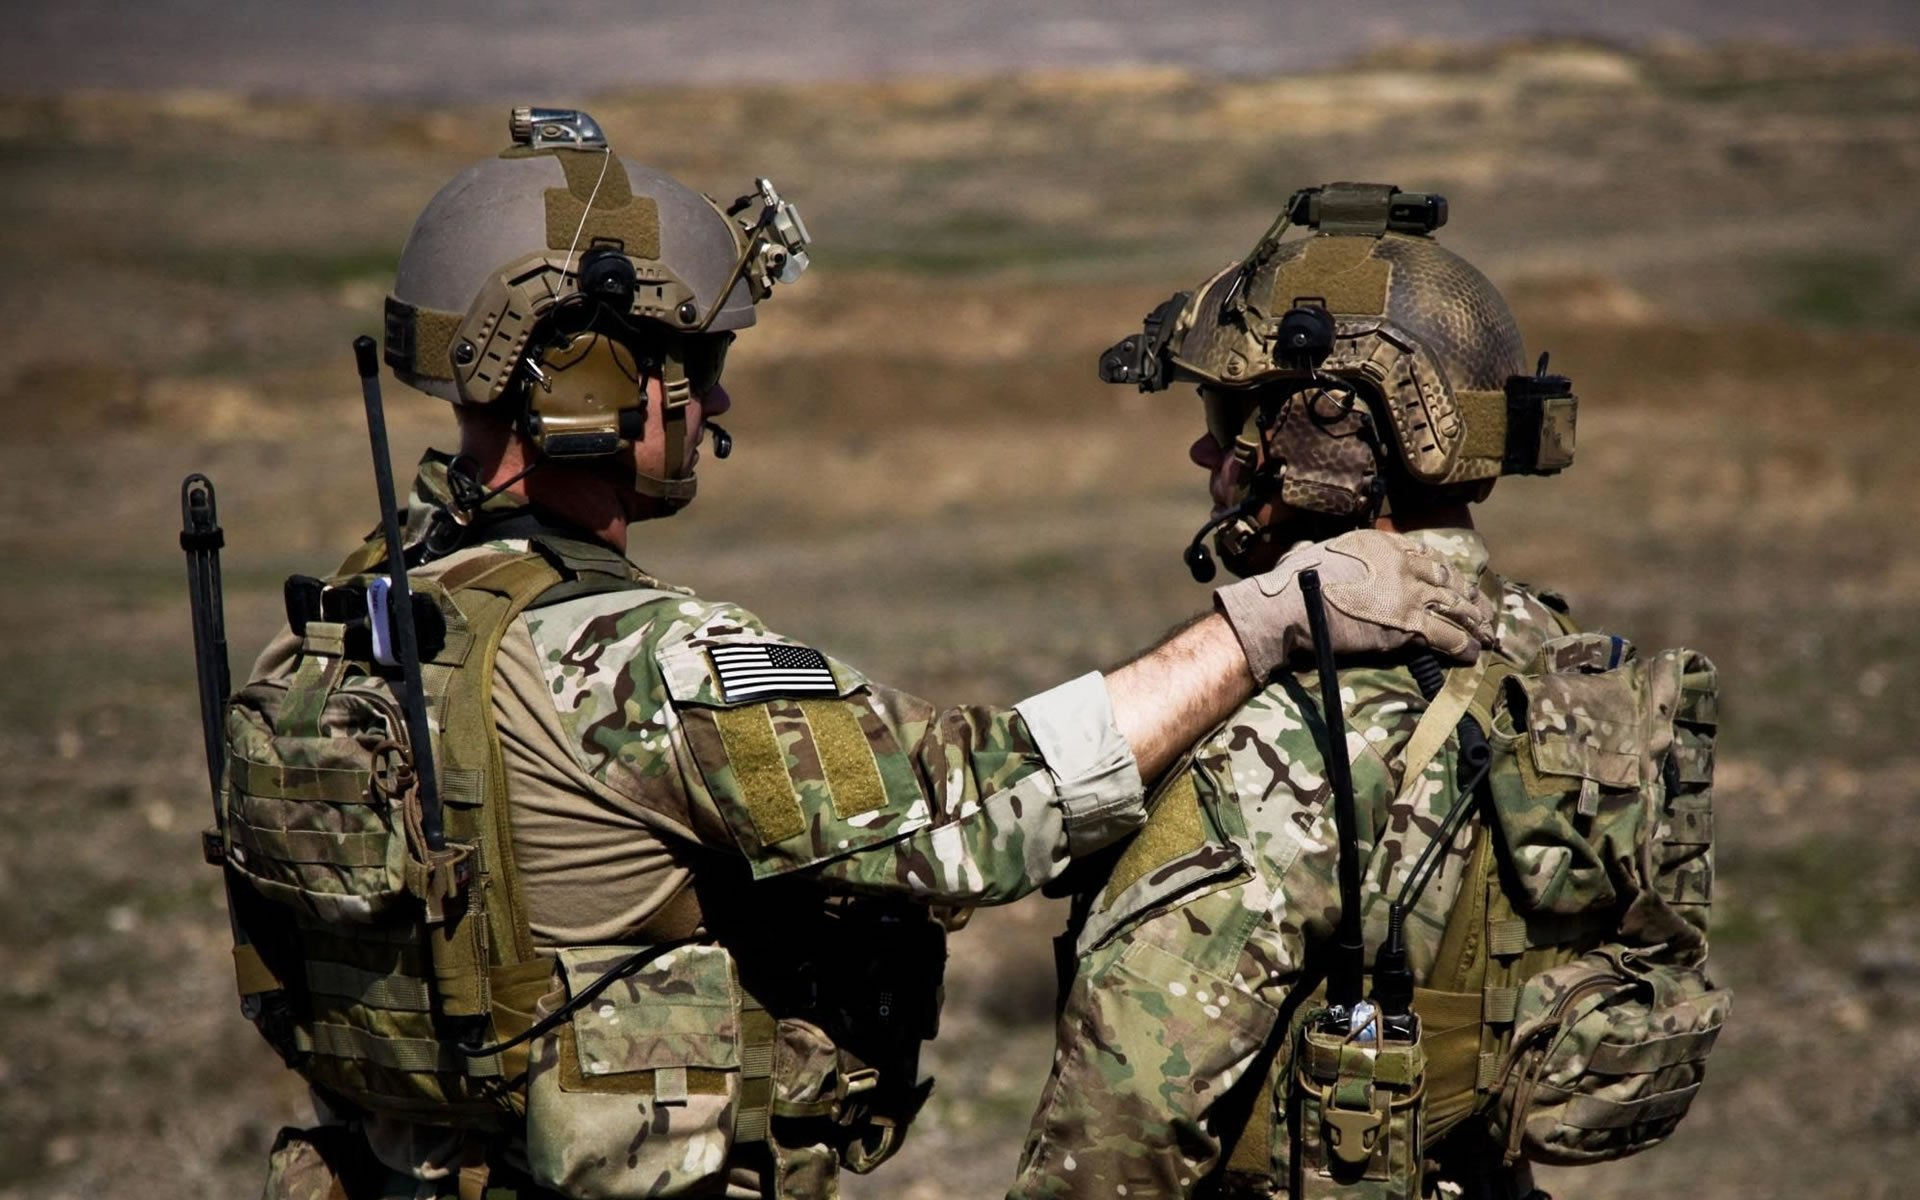 Us Army Special Forces Wallpaper: Army Rangers Wallpaper